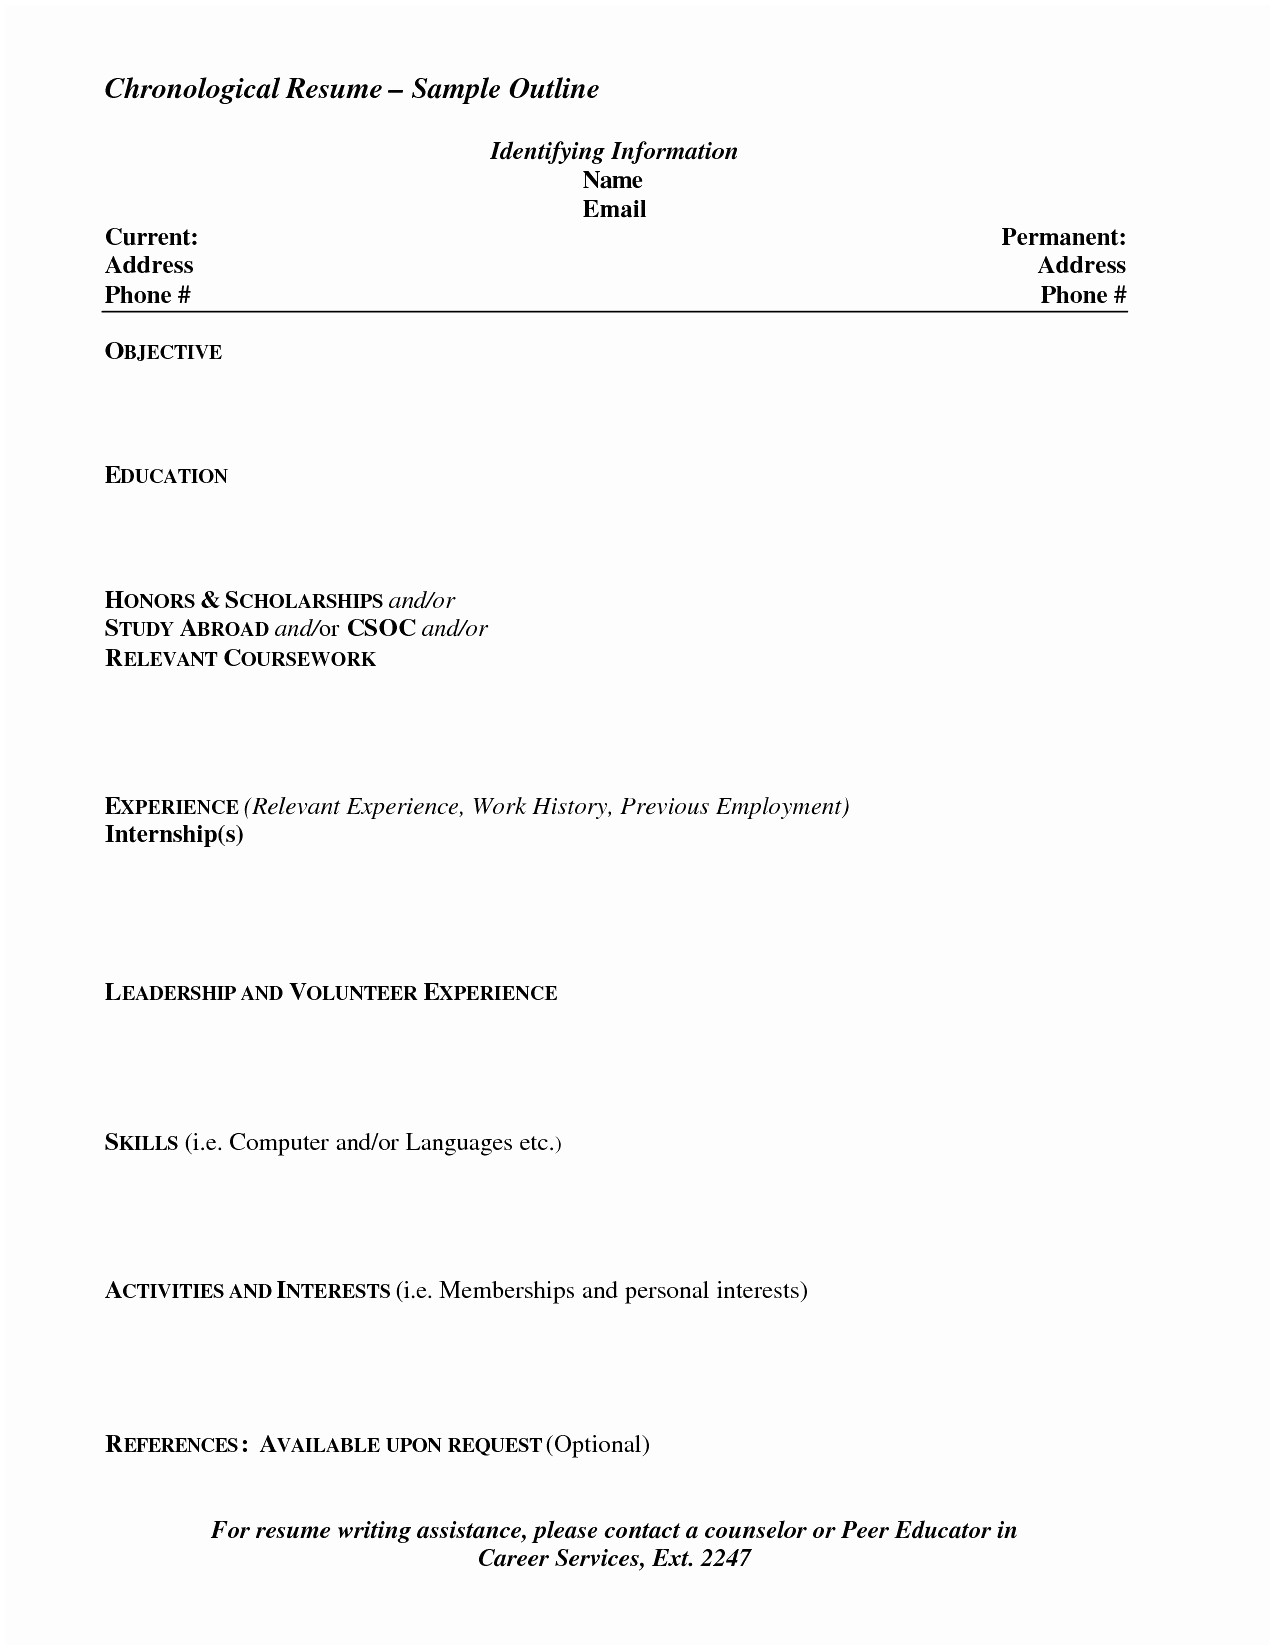 letter of intent to purchase business template example-How to Do A Cover Letter Inspirational formatted Resume 0d Professional Resume Templates Beautiful Letter Intent To Purchase A Business 3-p